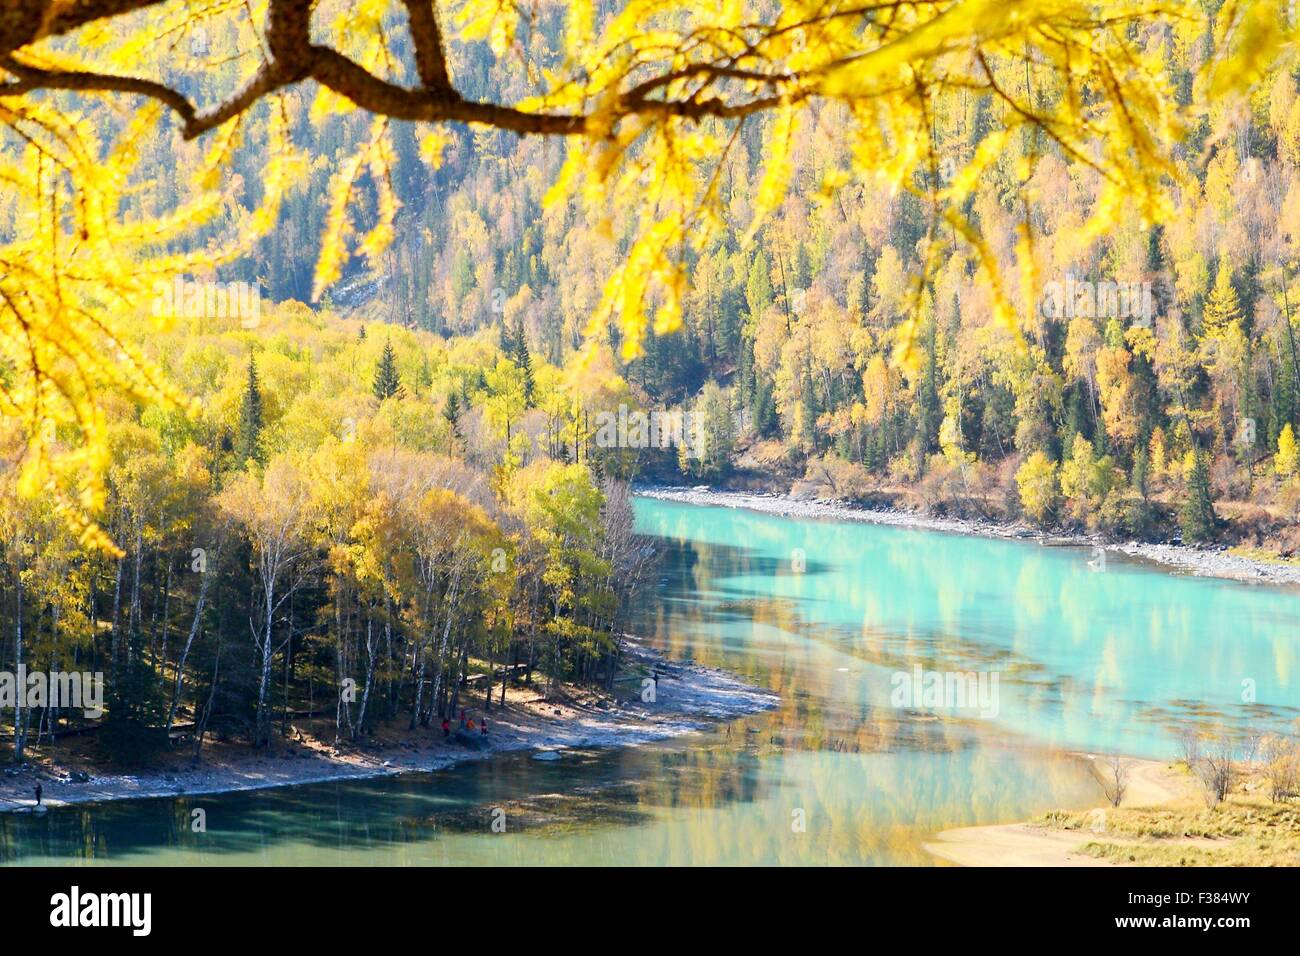 Altay. 1st Oct, 2015. Photo taken on Oct. 1, 2015 shows the autumn scenery of Kanas, northwest China's Xinjiang - Stock Image